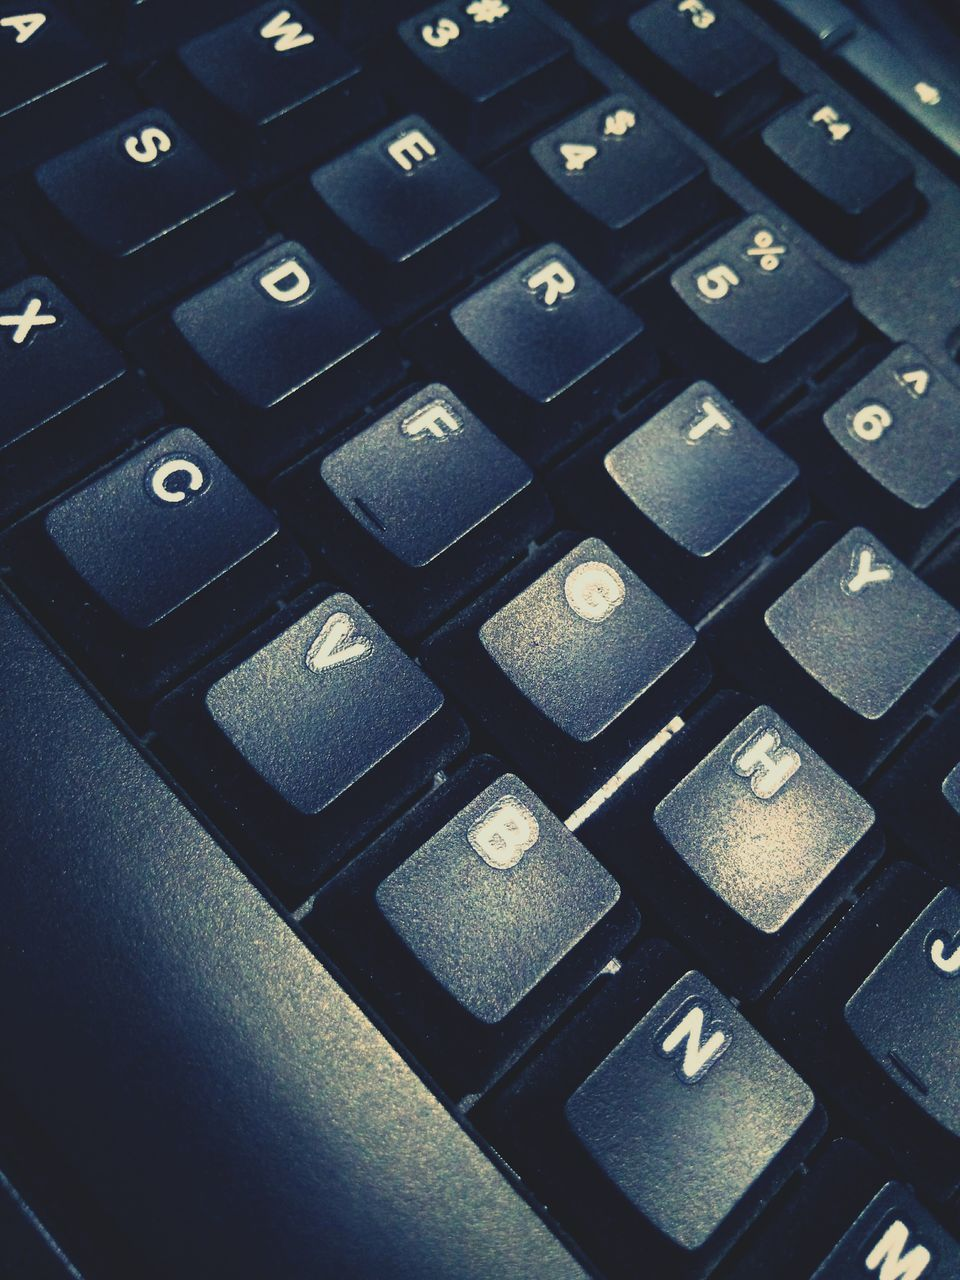 technology, computer key, communication, connection, alphabet, close-up, text, computer keyboard, no people, indoors, high angle view, backgrounds, convenience, keyboard, full frame, computer, old-fashioned, typewriter, day